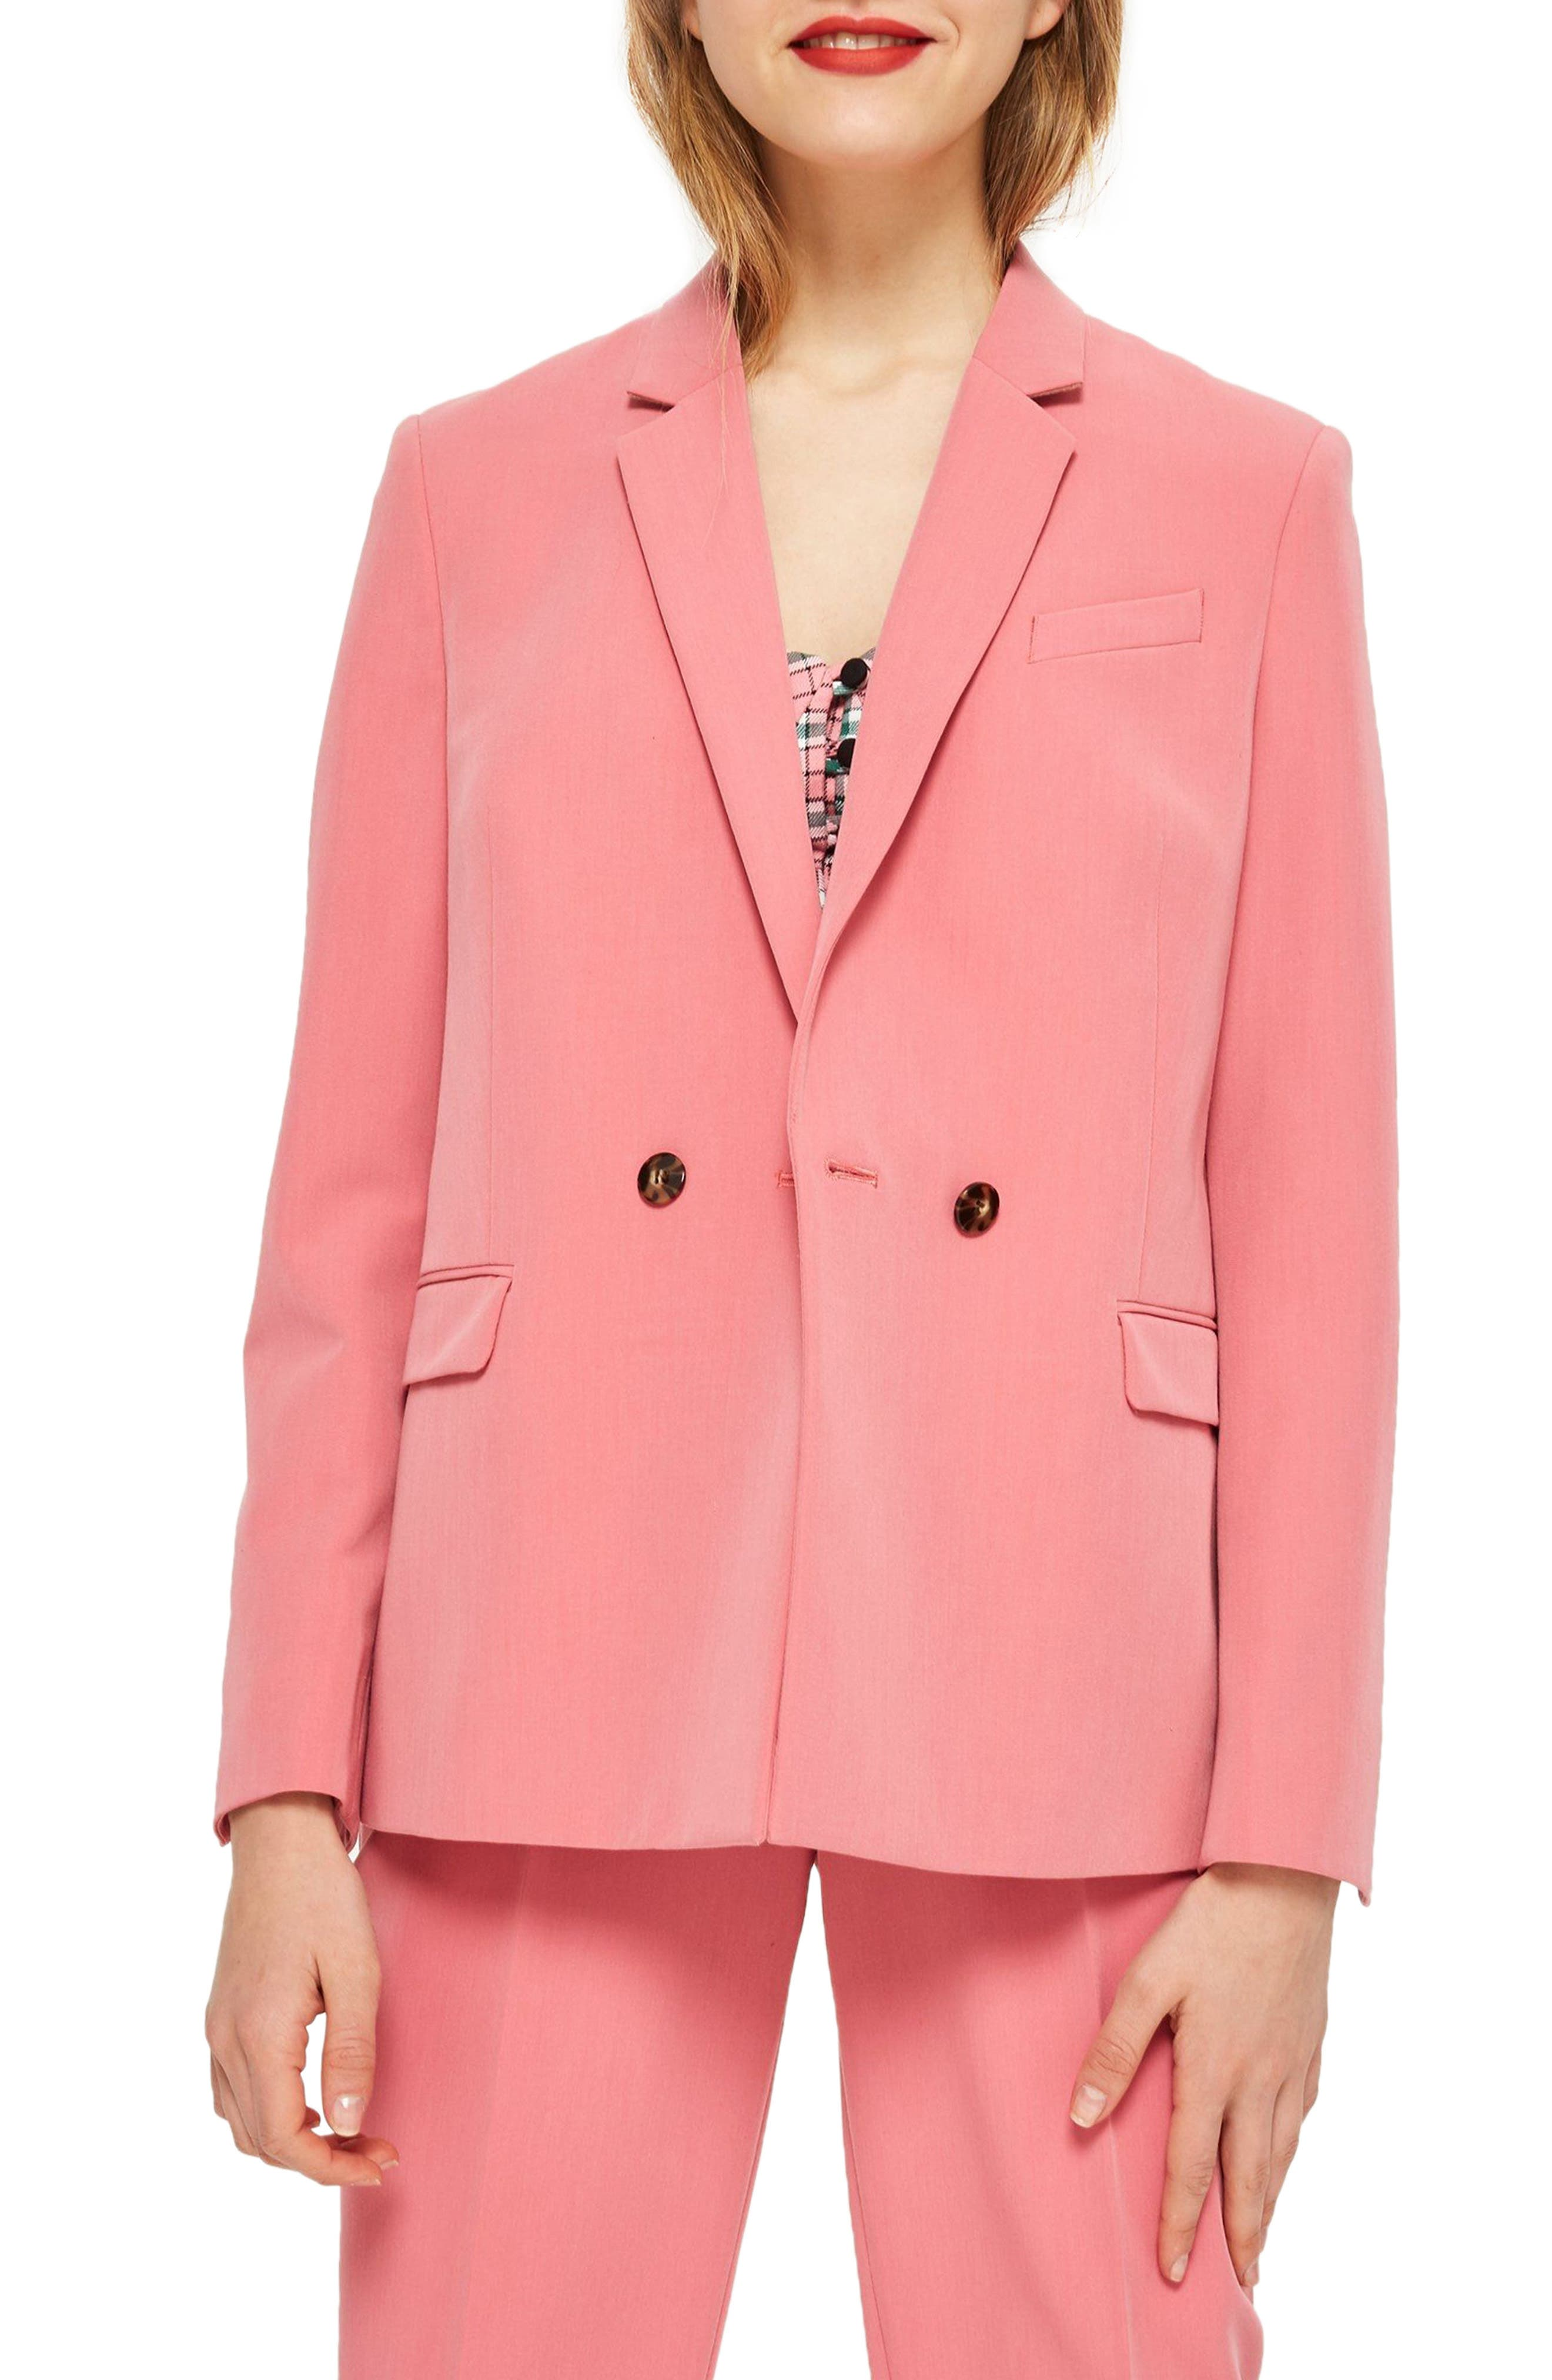 Topshop Longline Double Breasted Button Suit Jacket